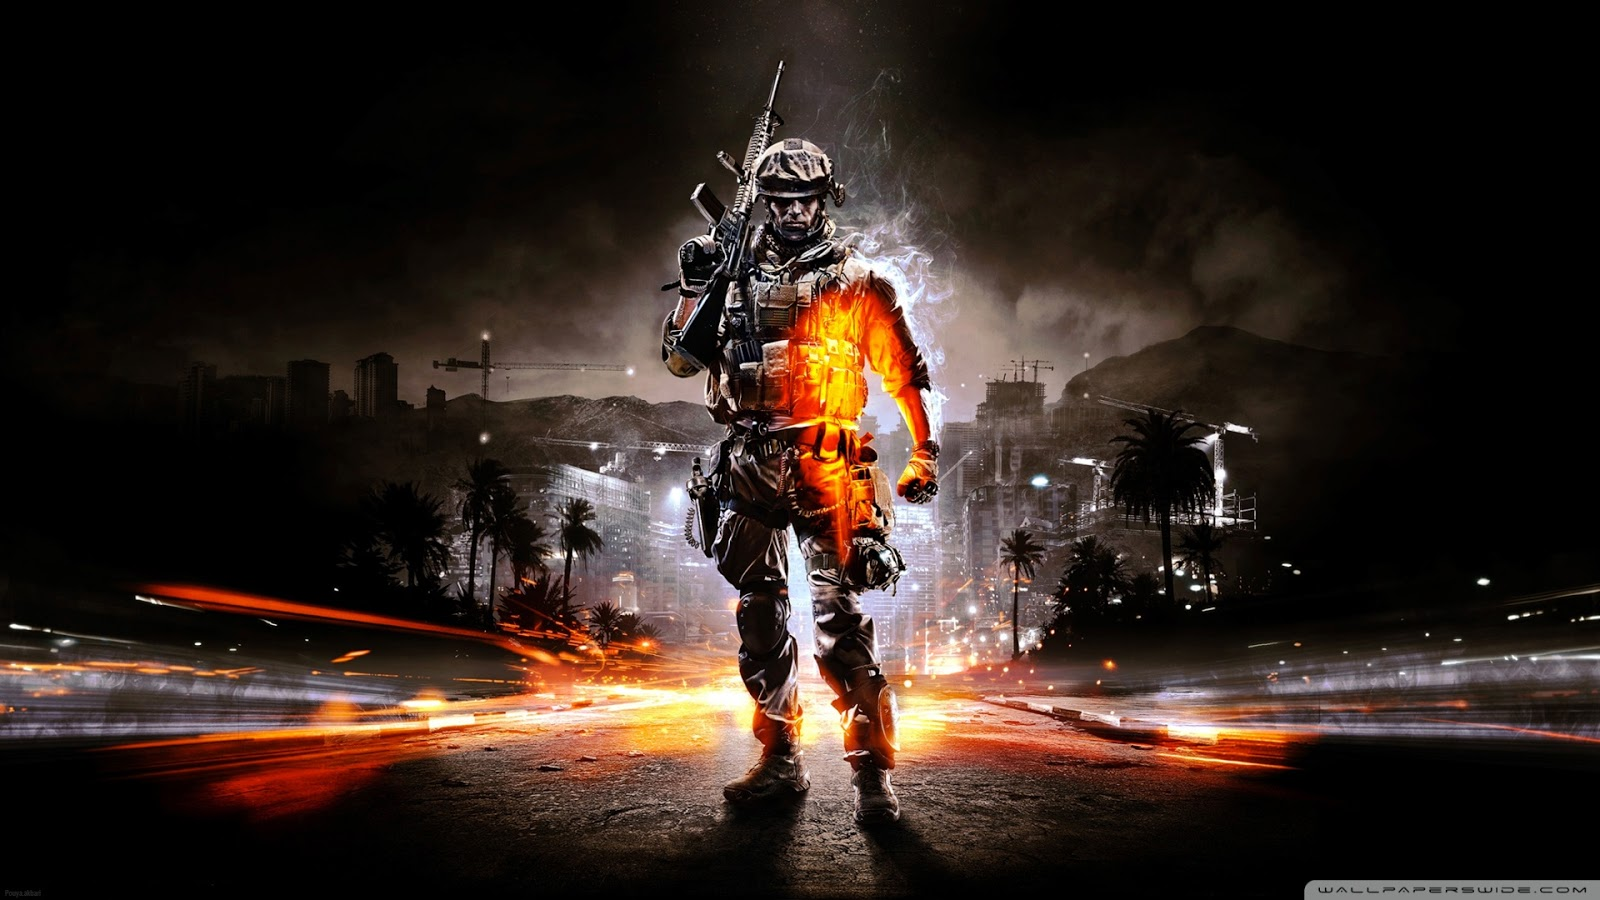 Wallpapers HD: Battlefield Game Wallpapers